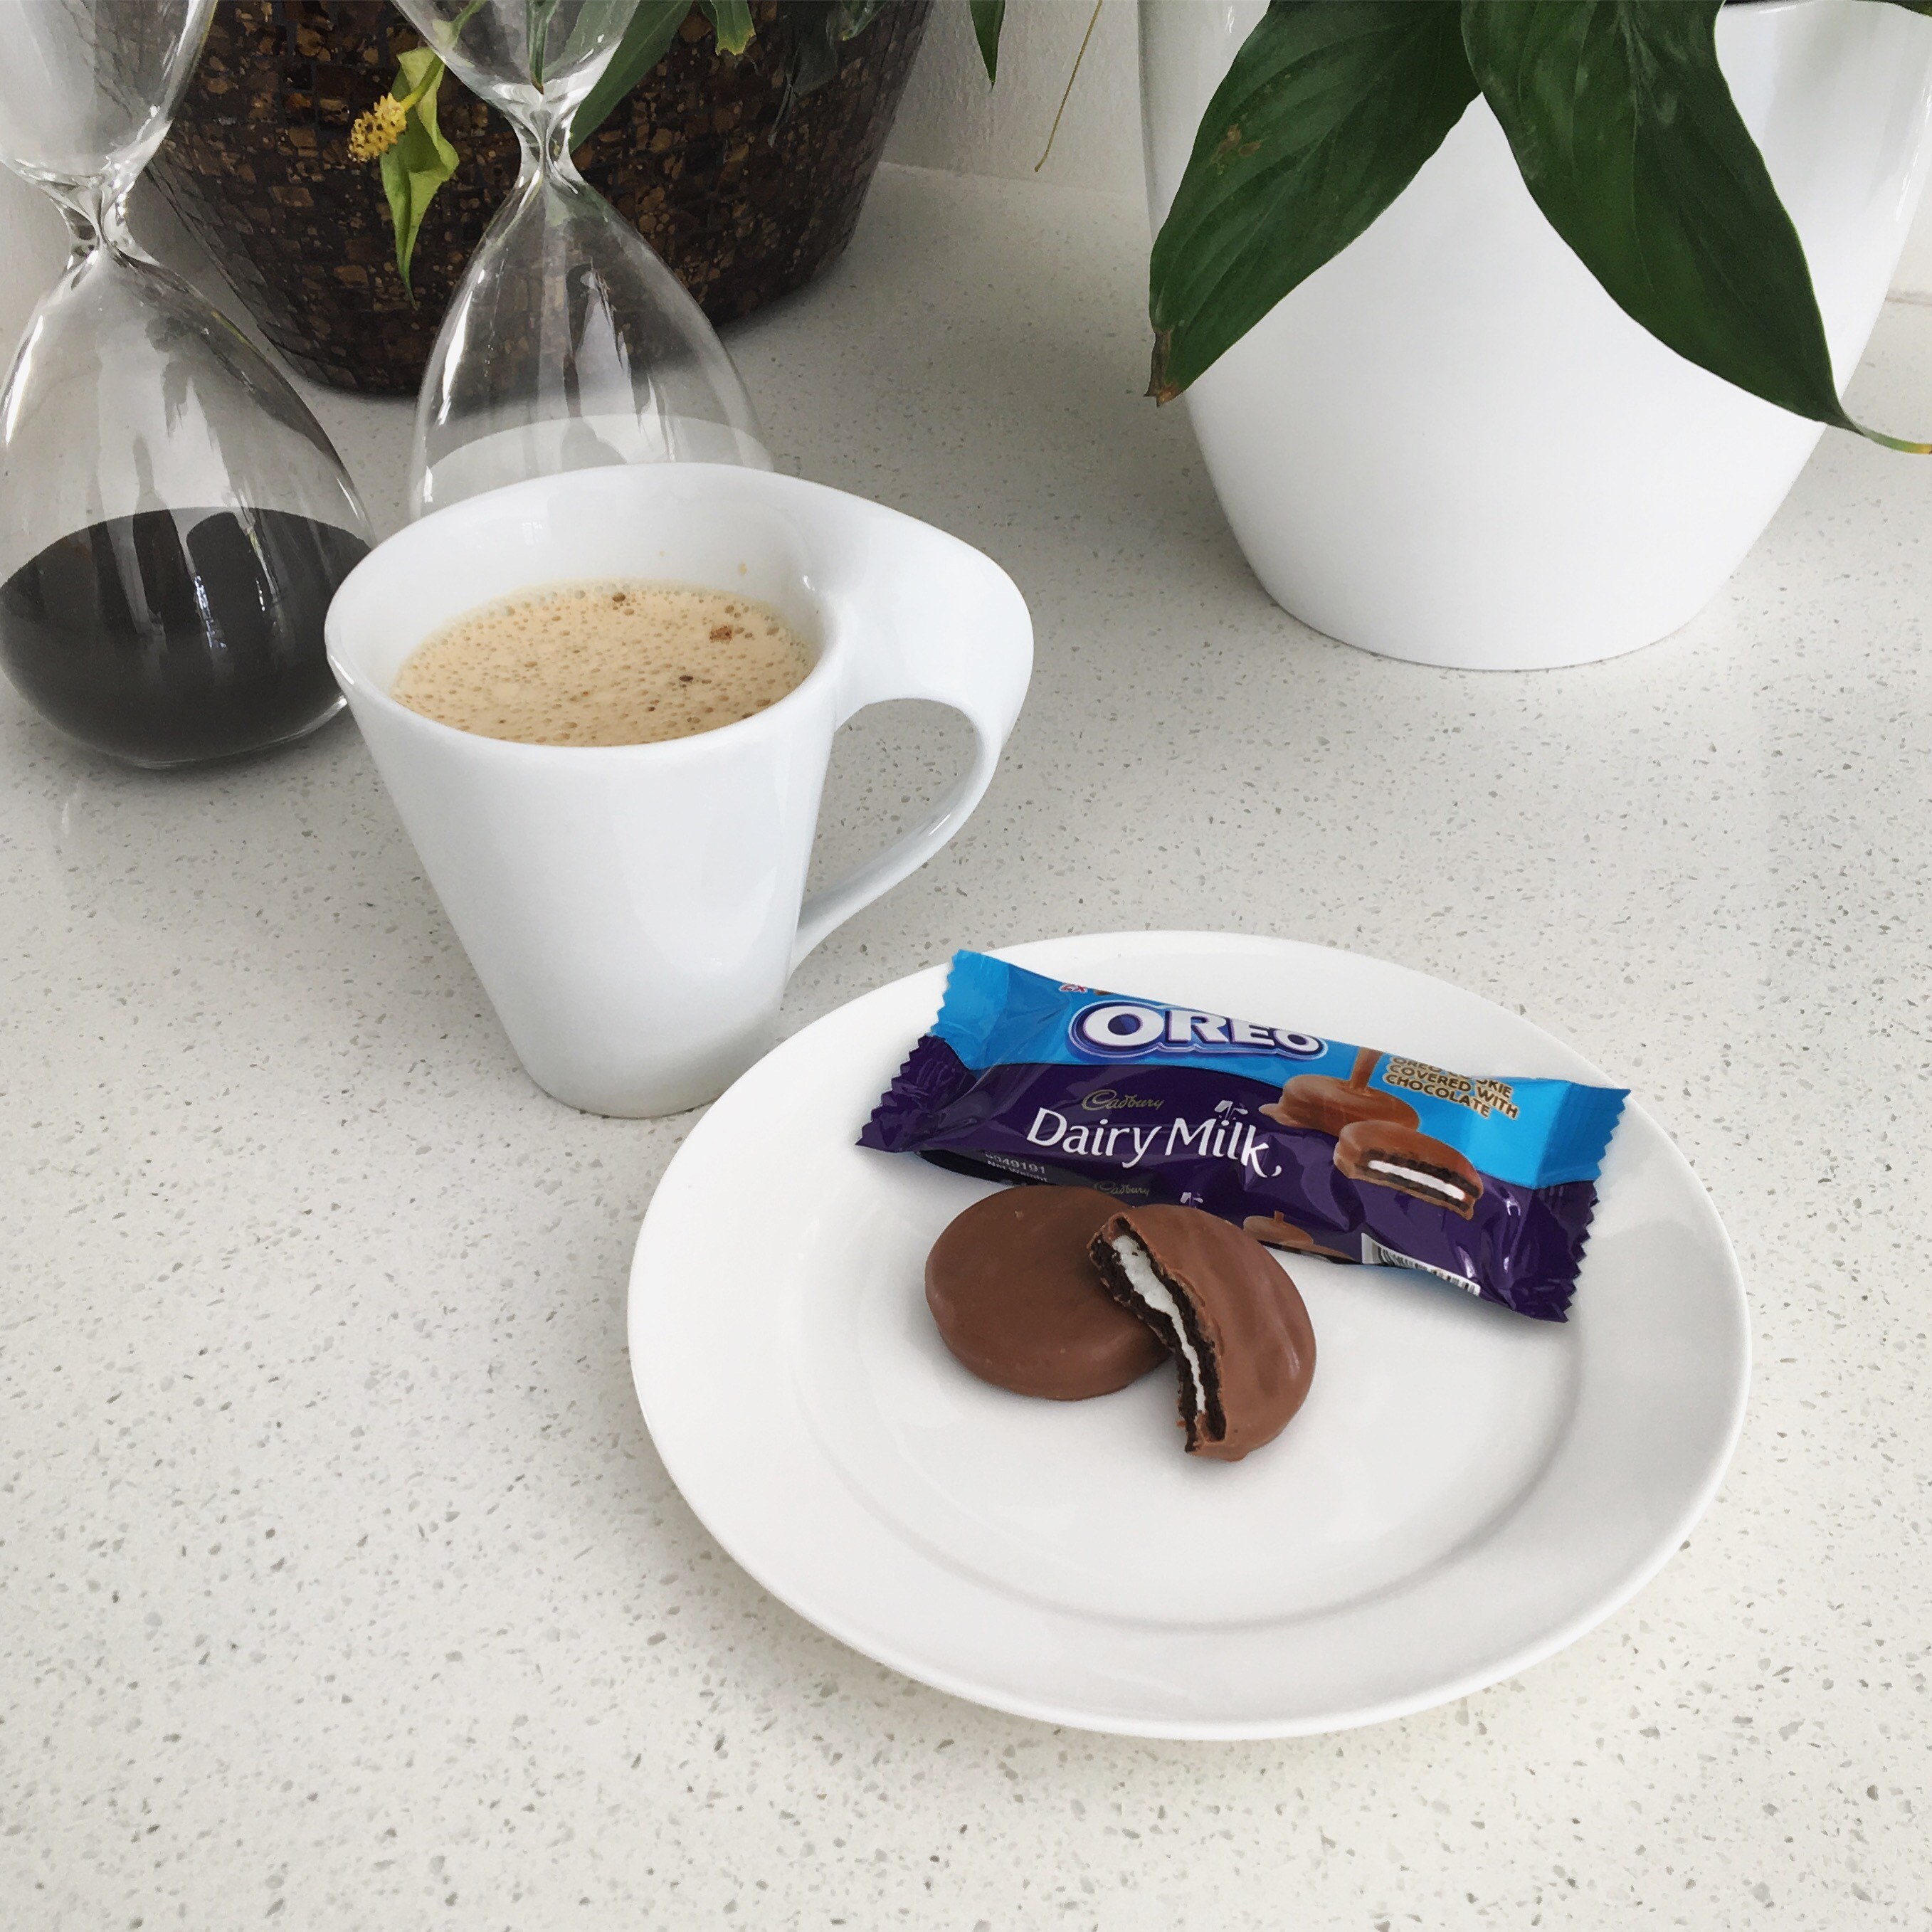 Press Release: Oreo covered in Cadbury Dairy Milk now available in a 6-Pack